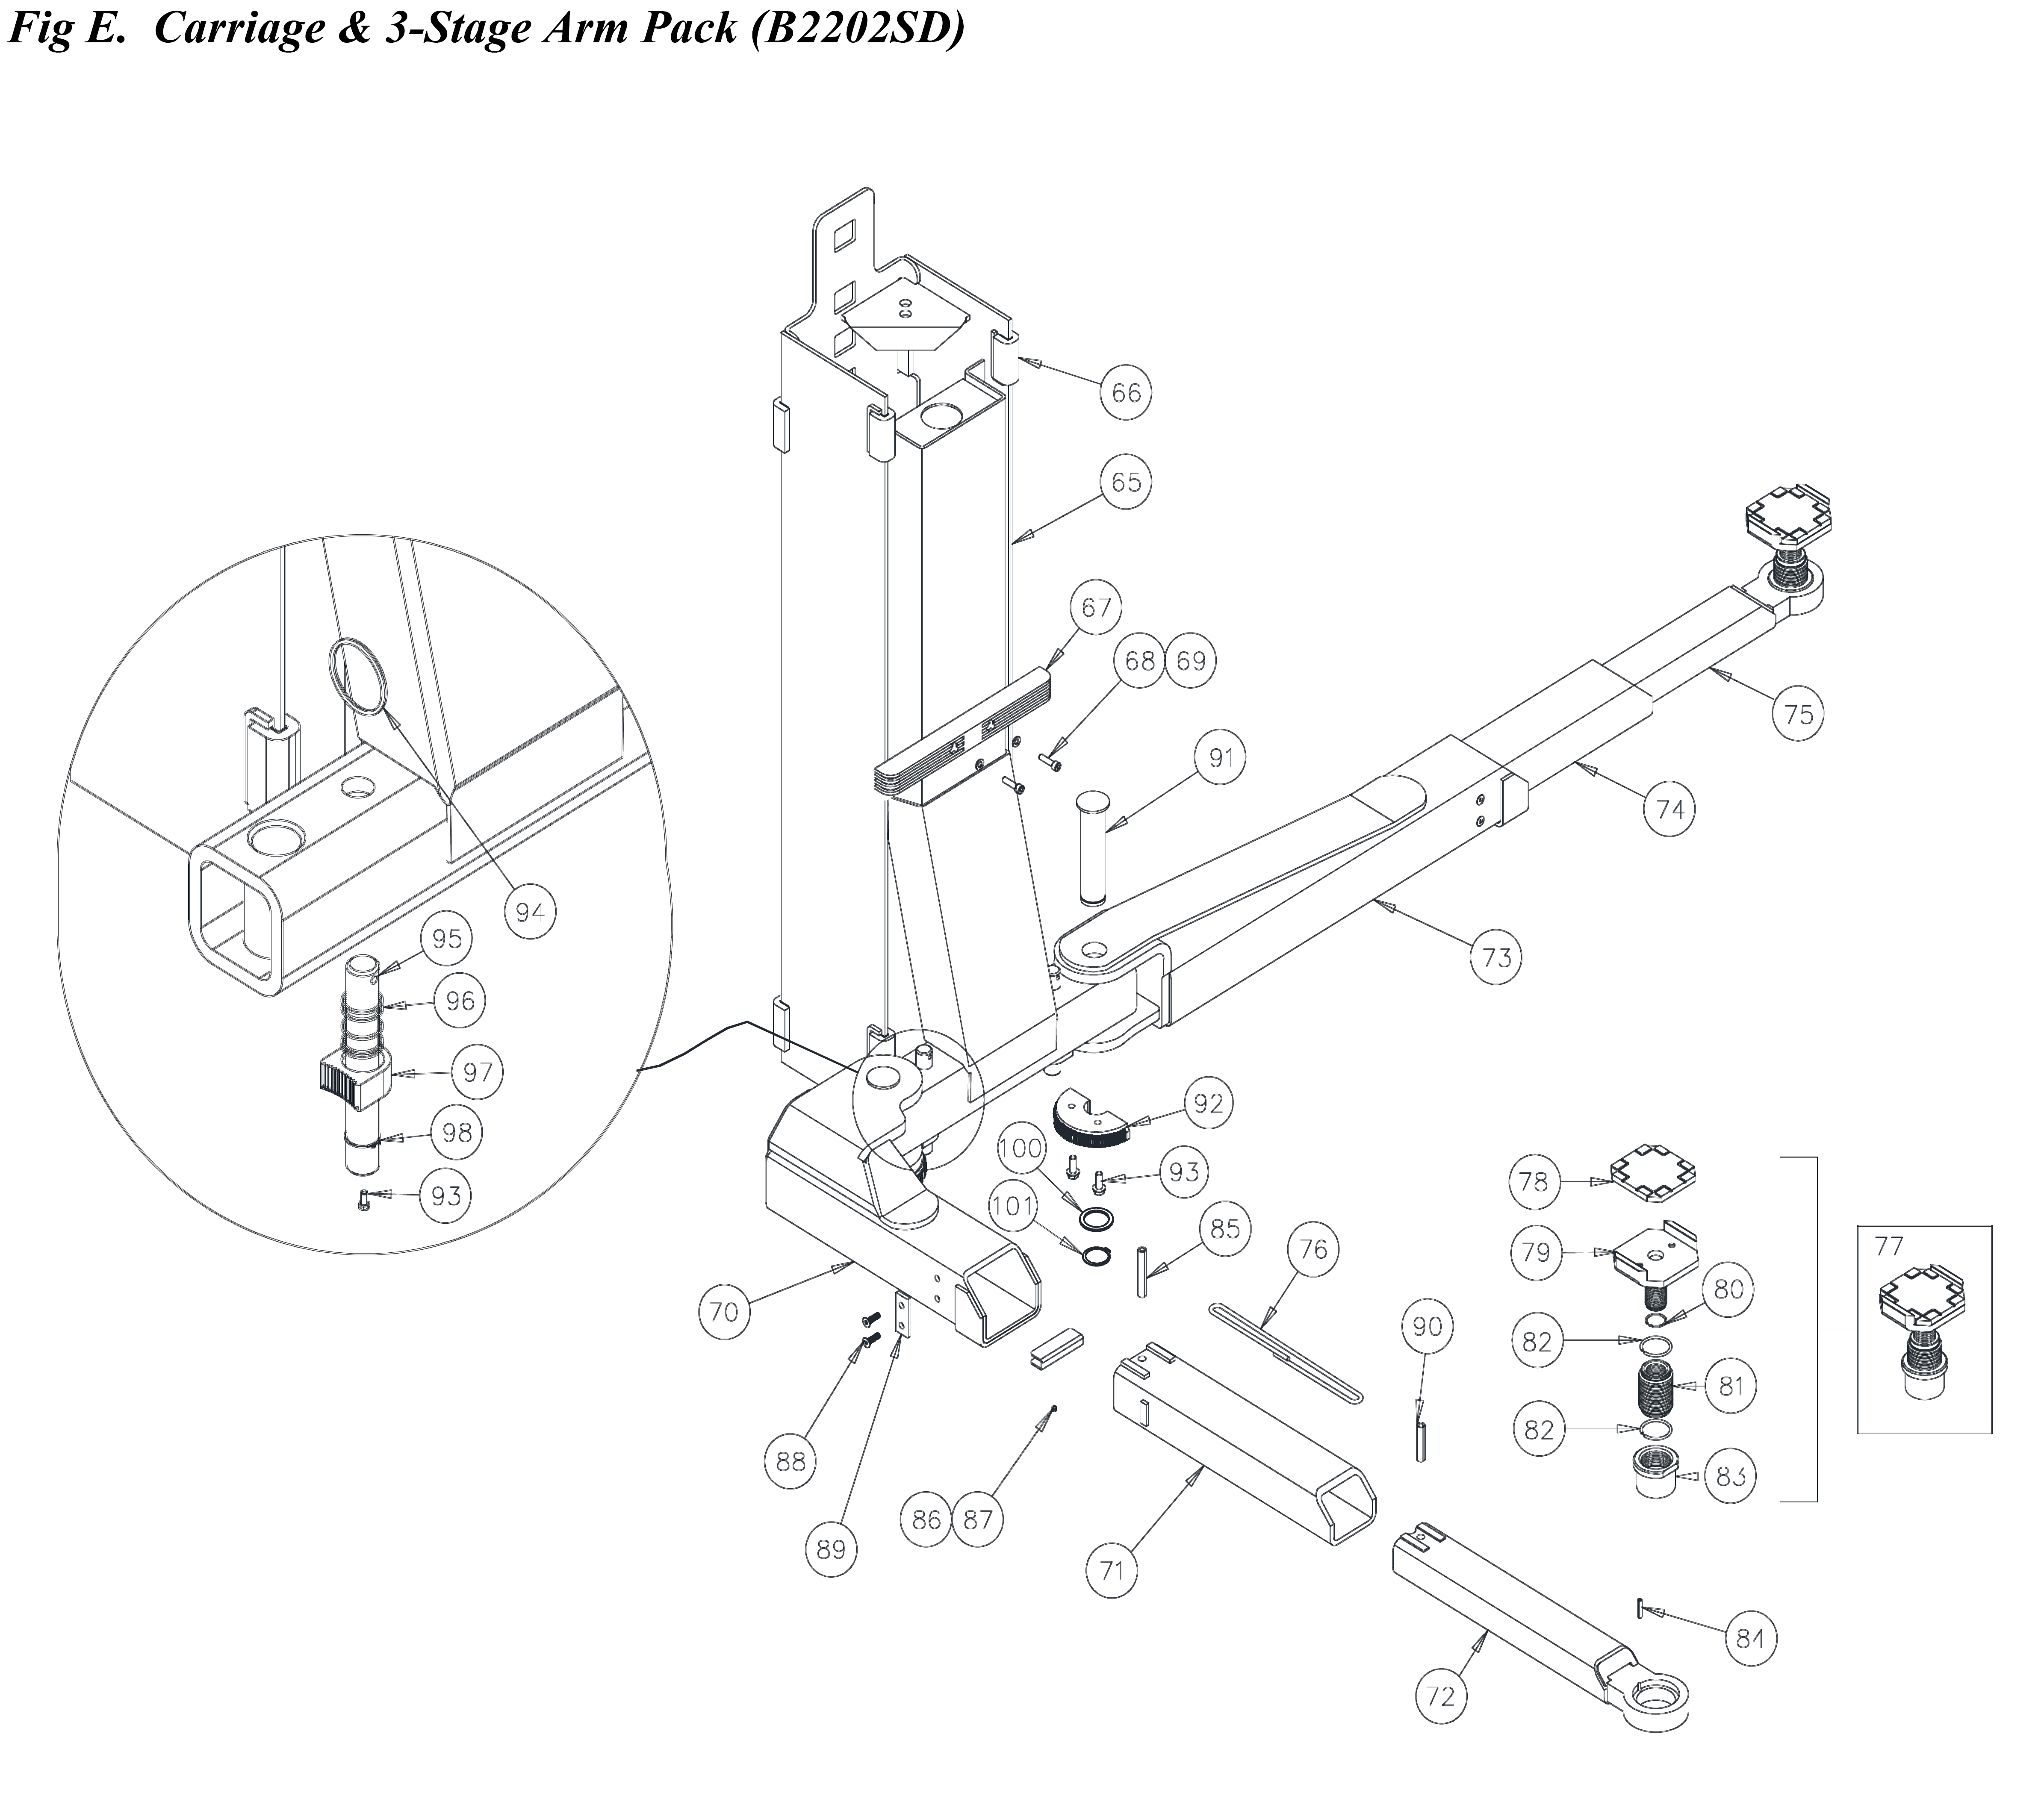 cl10-carriage-and-3-stage-arm-pack-diagram.png